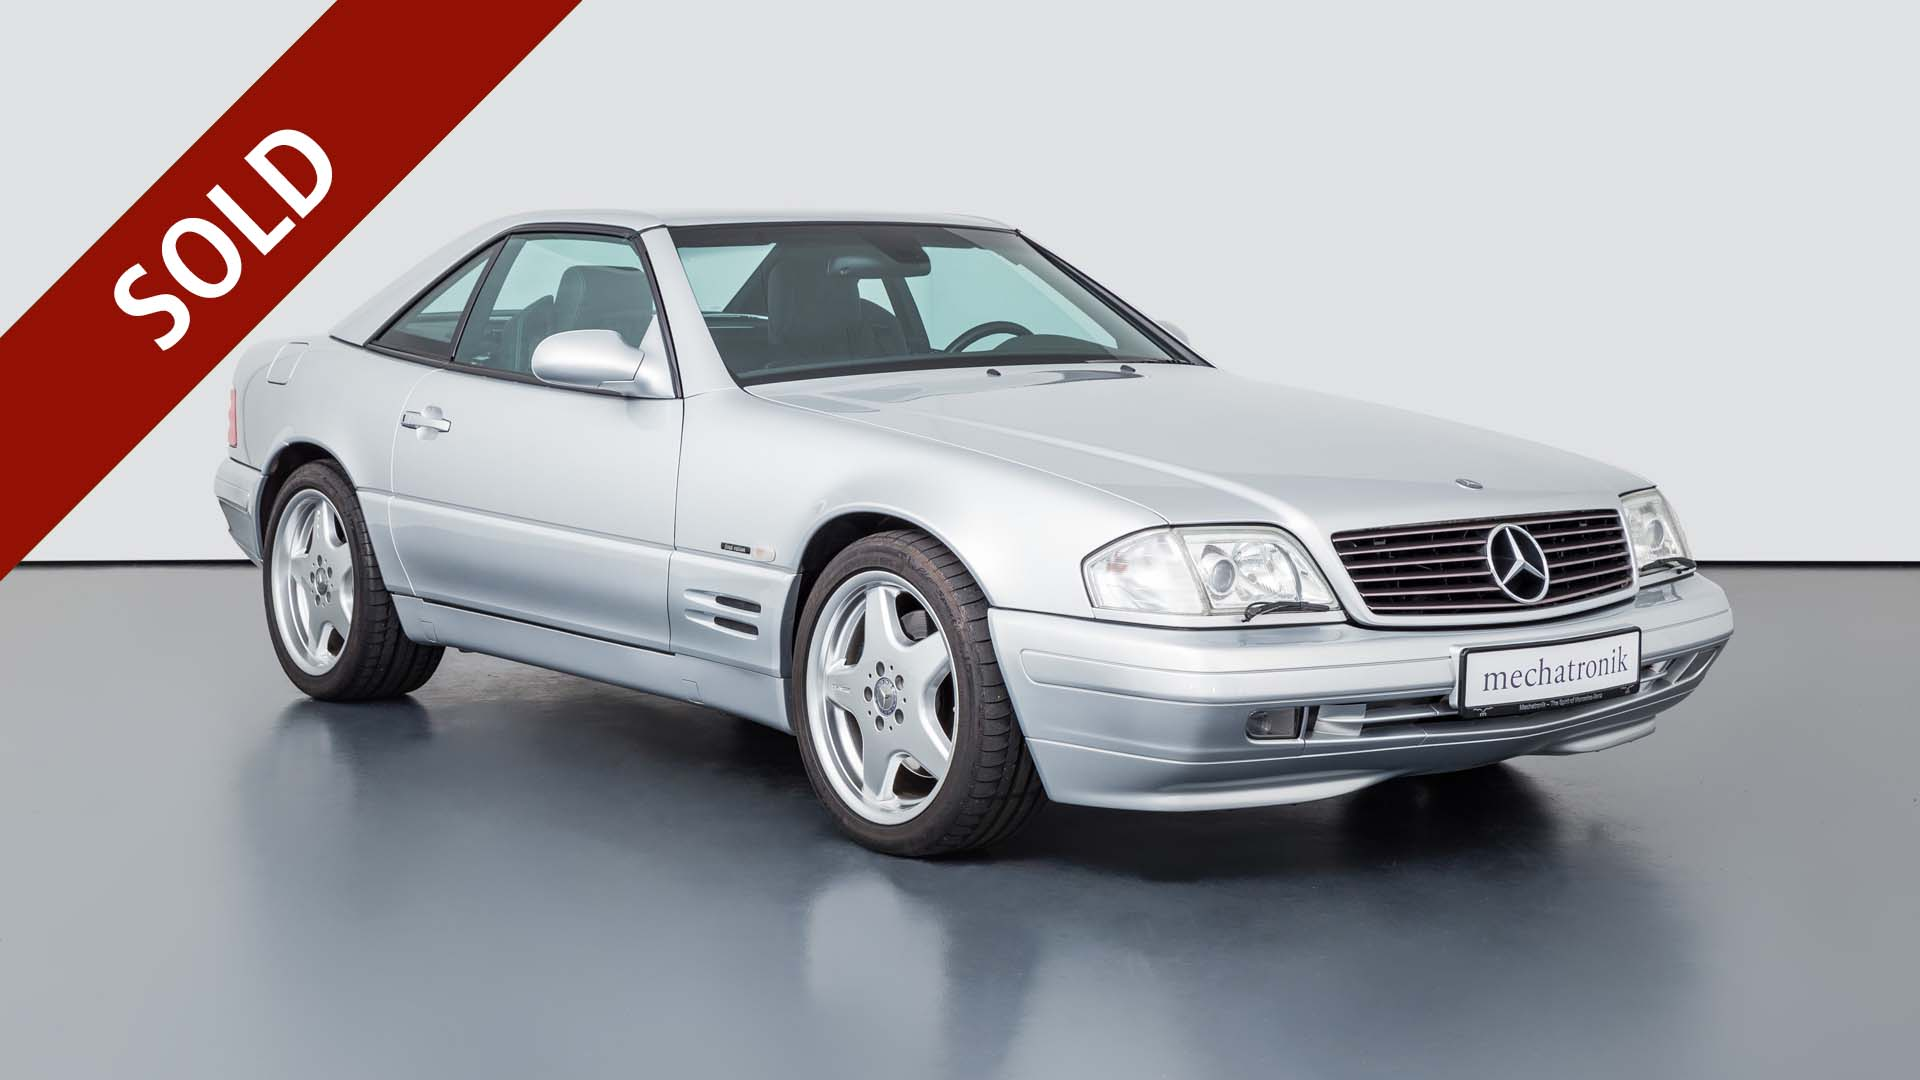 Mercedes-Benz R 129 320 SL Final Edition